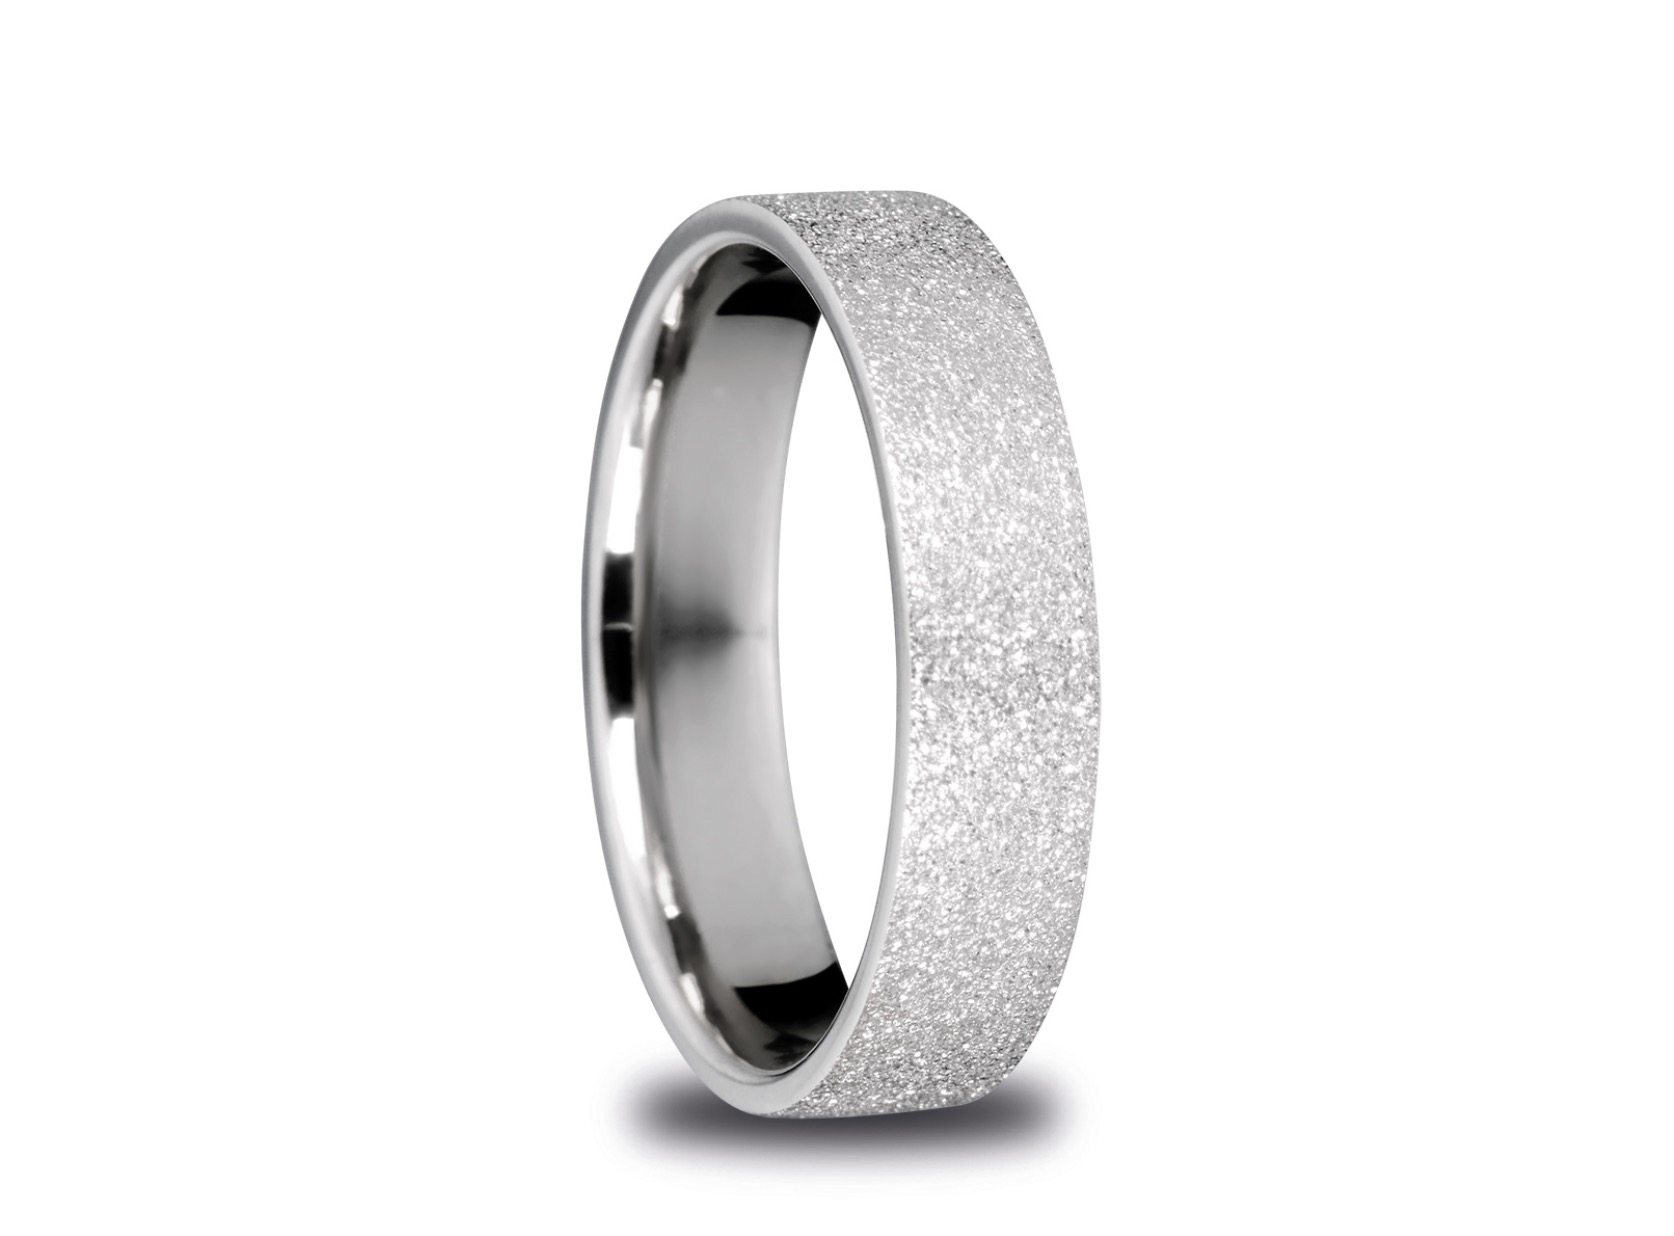 Bering Arctic Symphony Size 63 19.7mm Diameter Sparkling Silver Ring 557-19-82